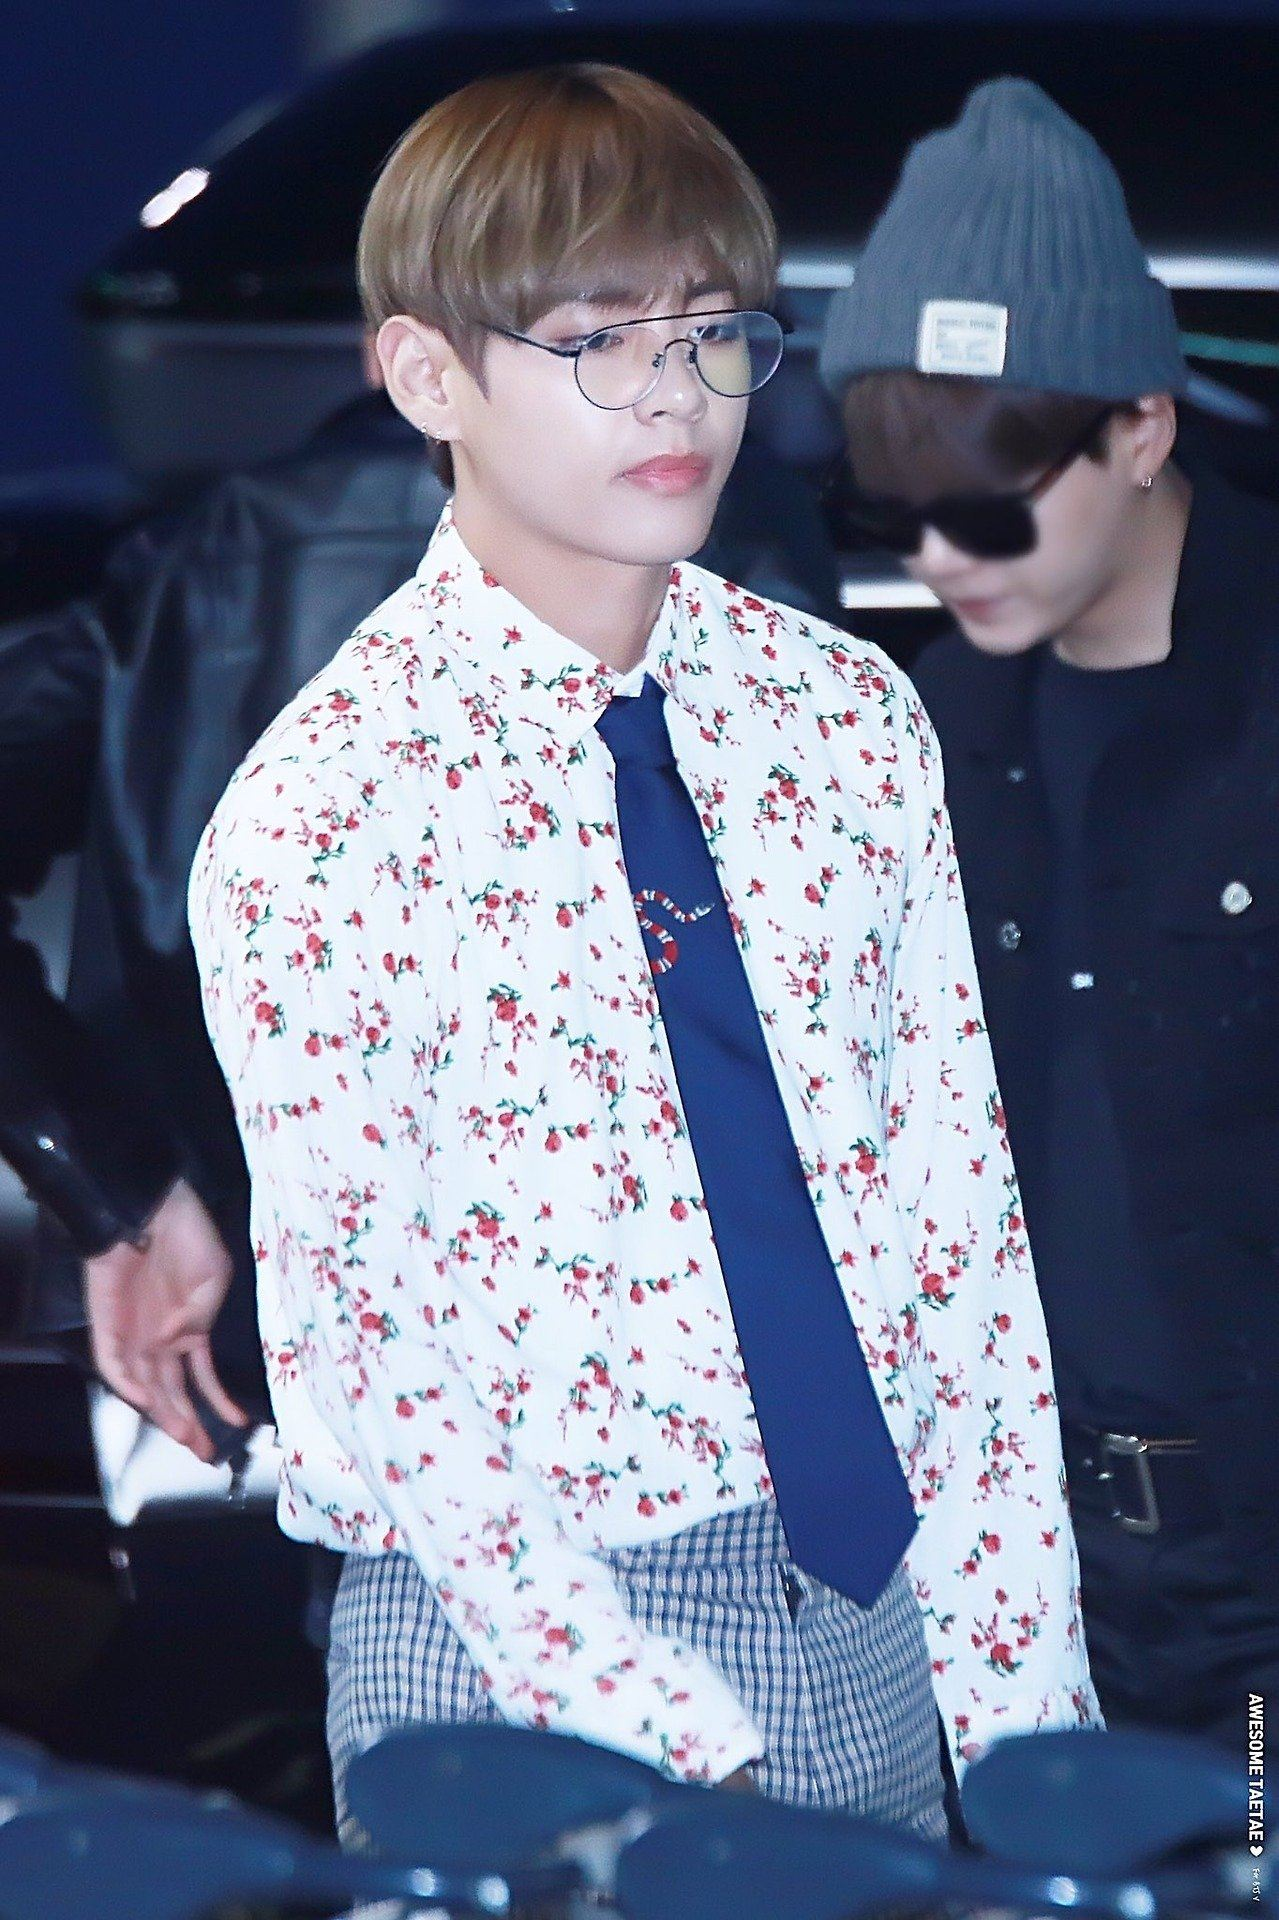 Bts V Reigns King Of Gucci With His Newest Accessories